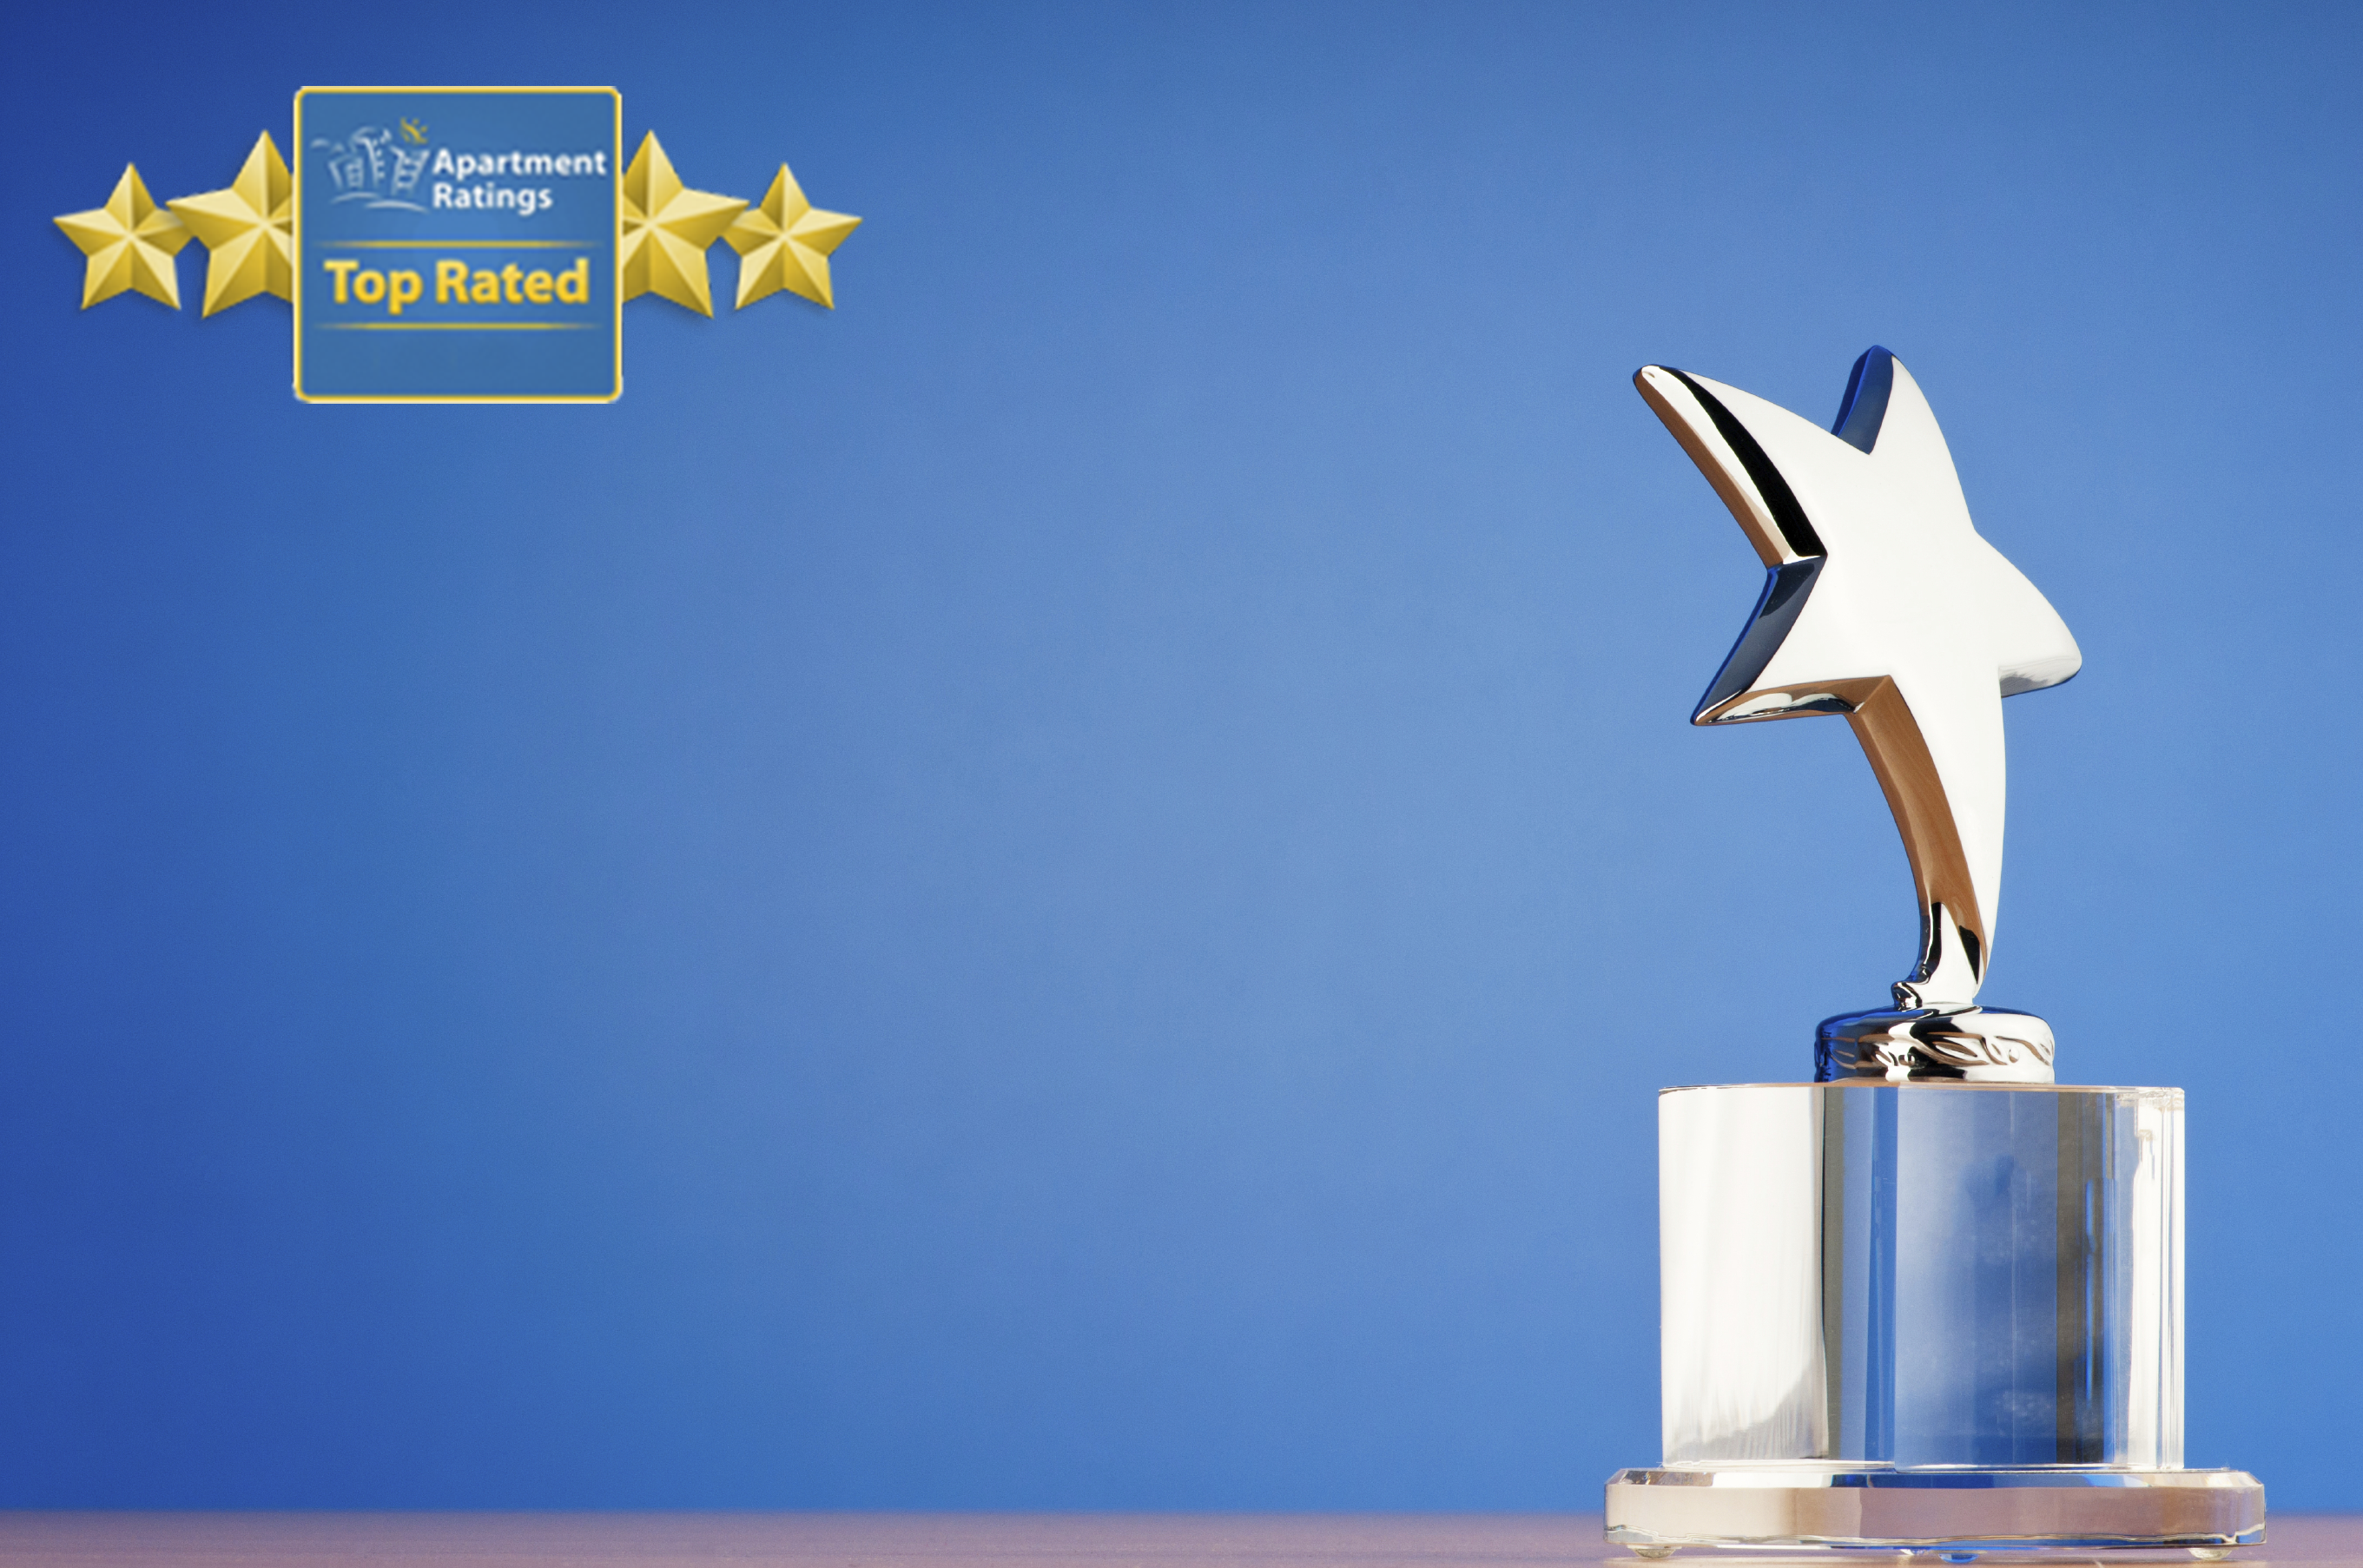 Three ResideBPG Properties Received An Award from ApartmentRatings.com!